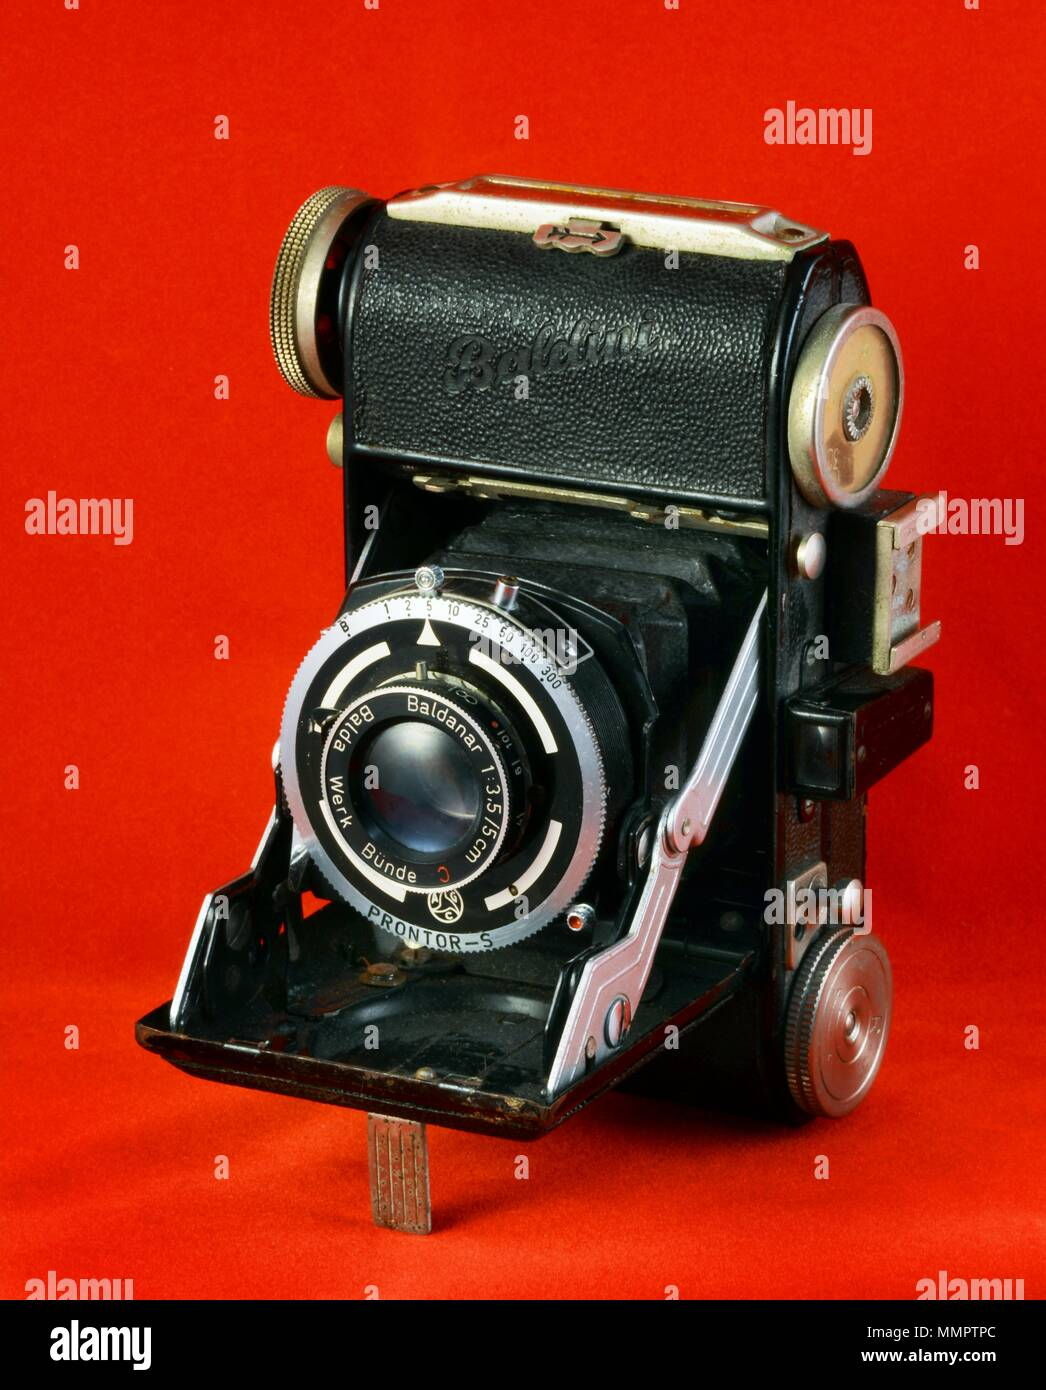 Baldinawere a series of cameras manufactured in Germany byBalda Werkefrom the mid 1930s to the mid 1950s.marketed under many many different names.. - Stock Image